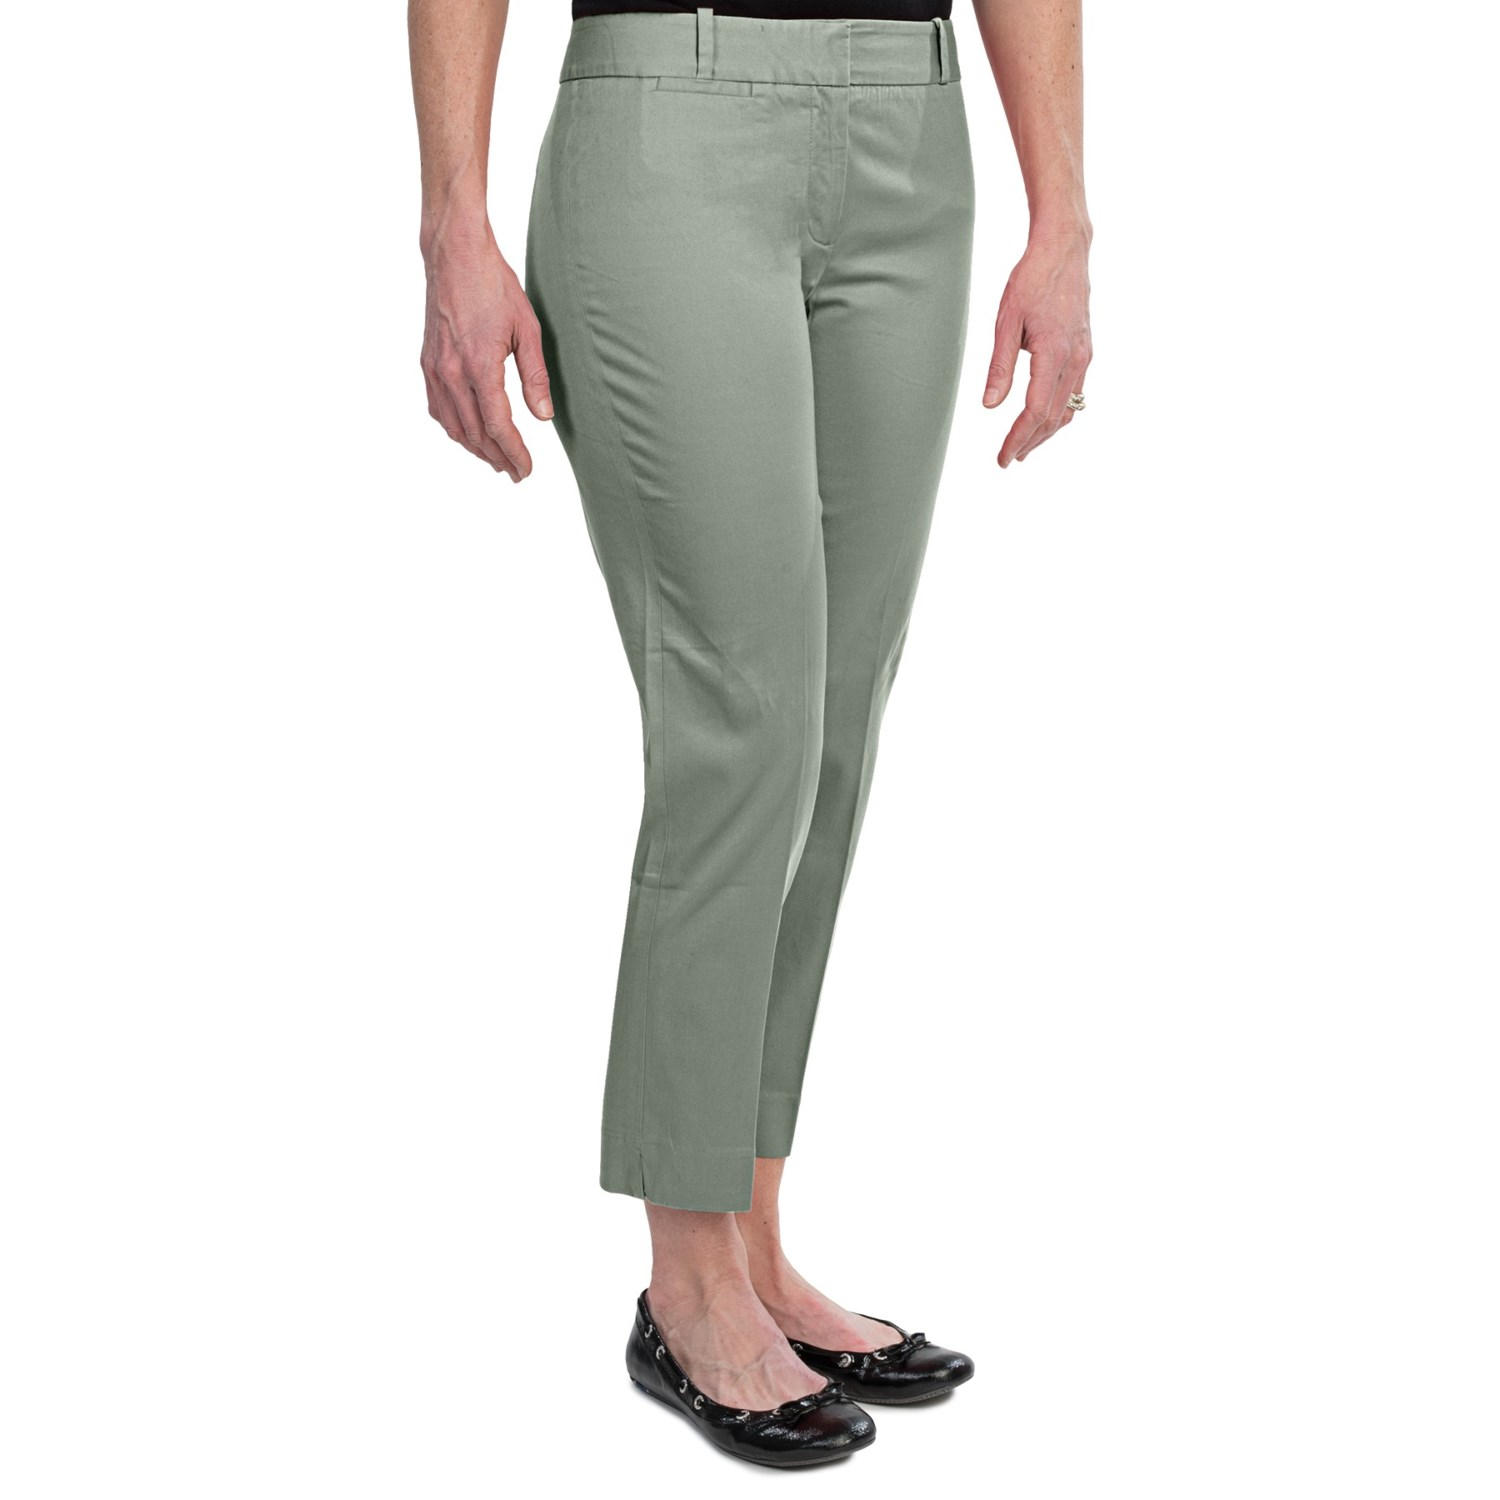 Warm-weather staples. Cotton sateen is done in a classic pedal pusher style to create these must-have capris. Designer details like a flat front and side slits elevate the look/5(26).